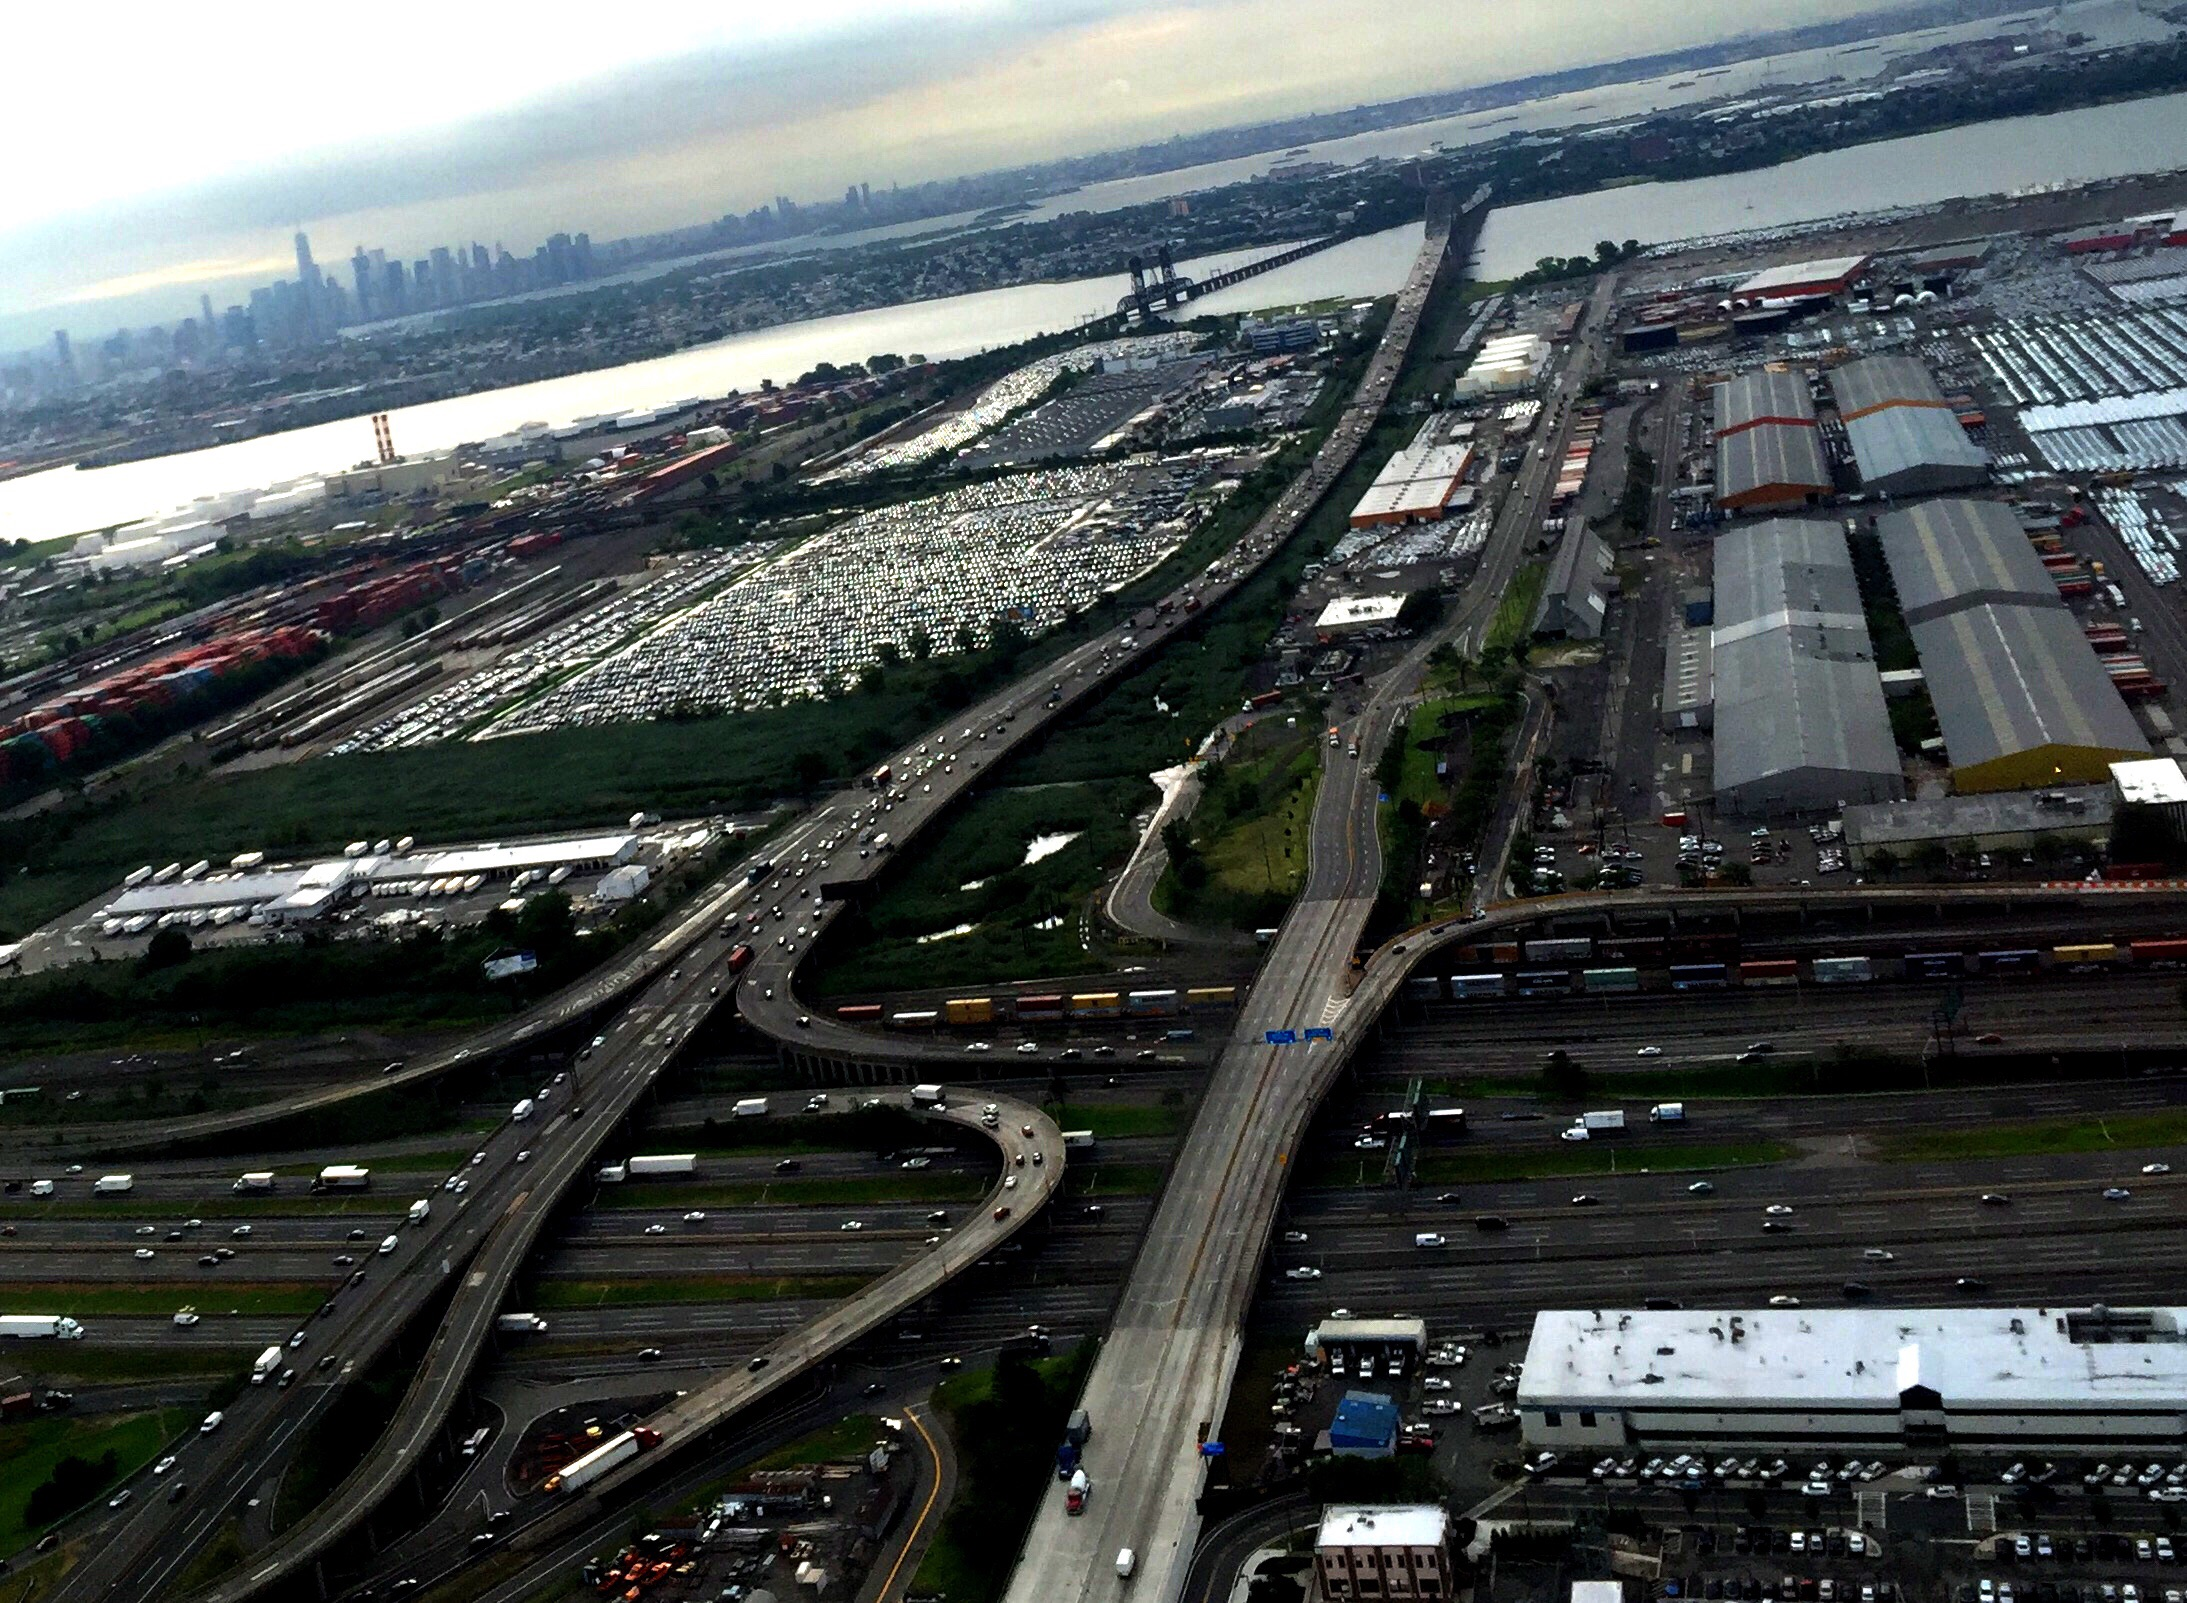 Over Newark Liberty Airport at 8:34 AM (Eastern Daylight Time) on August 18.